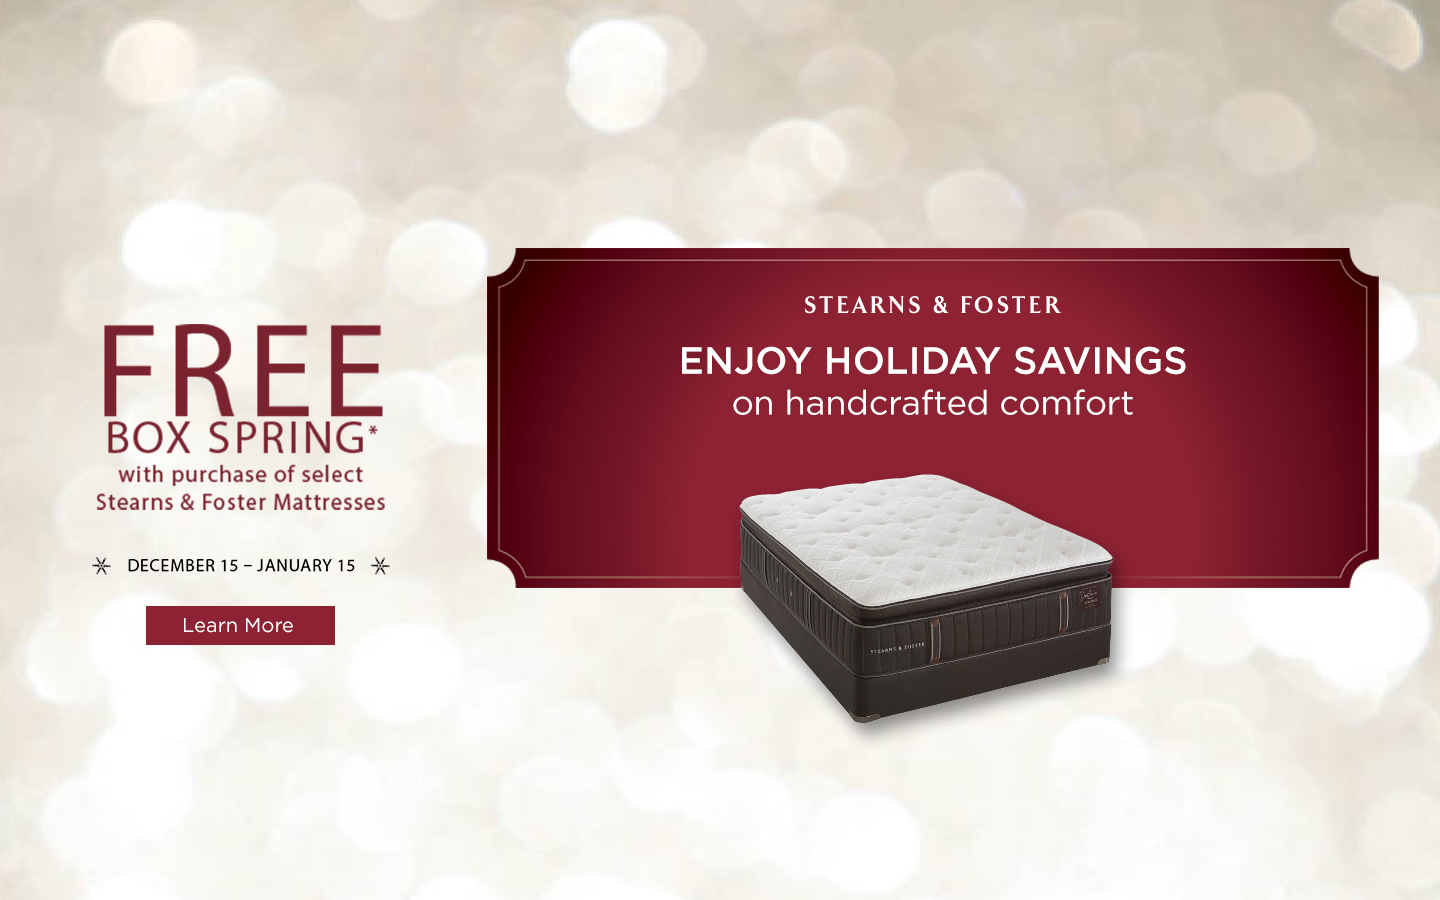 Stearns U0026 Foster Post Holiday Event 2017 Synchrony Financial Shop Bassett  Furniture ...